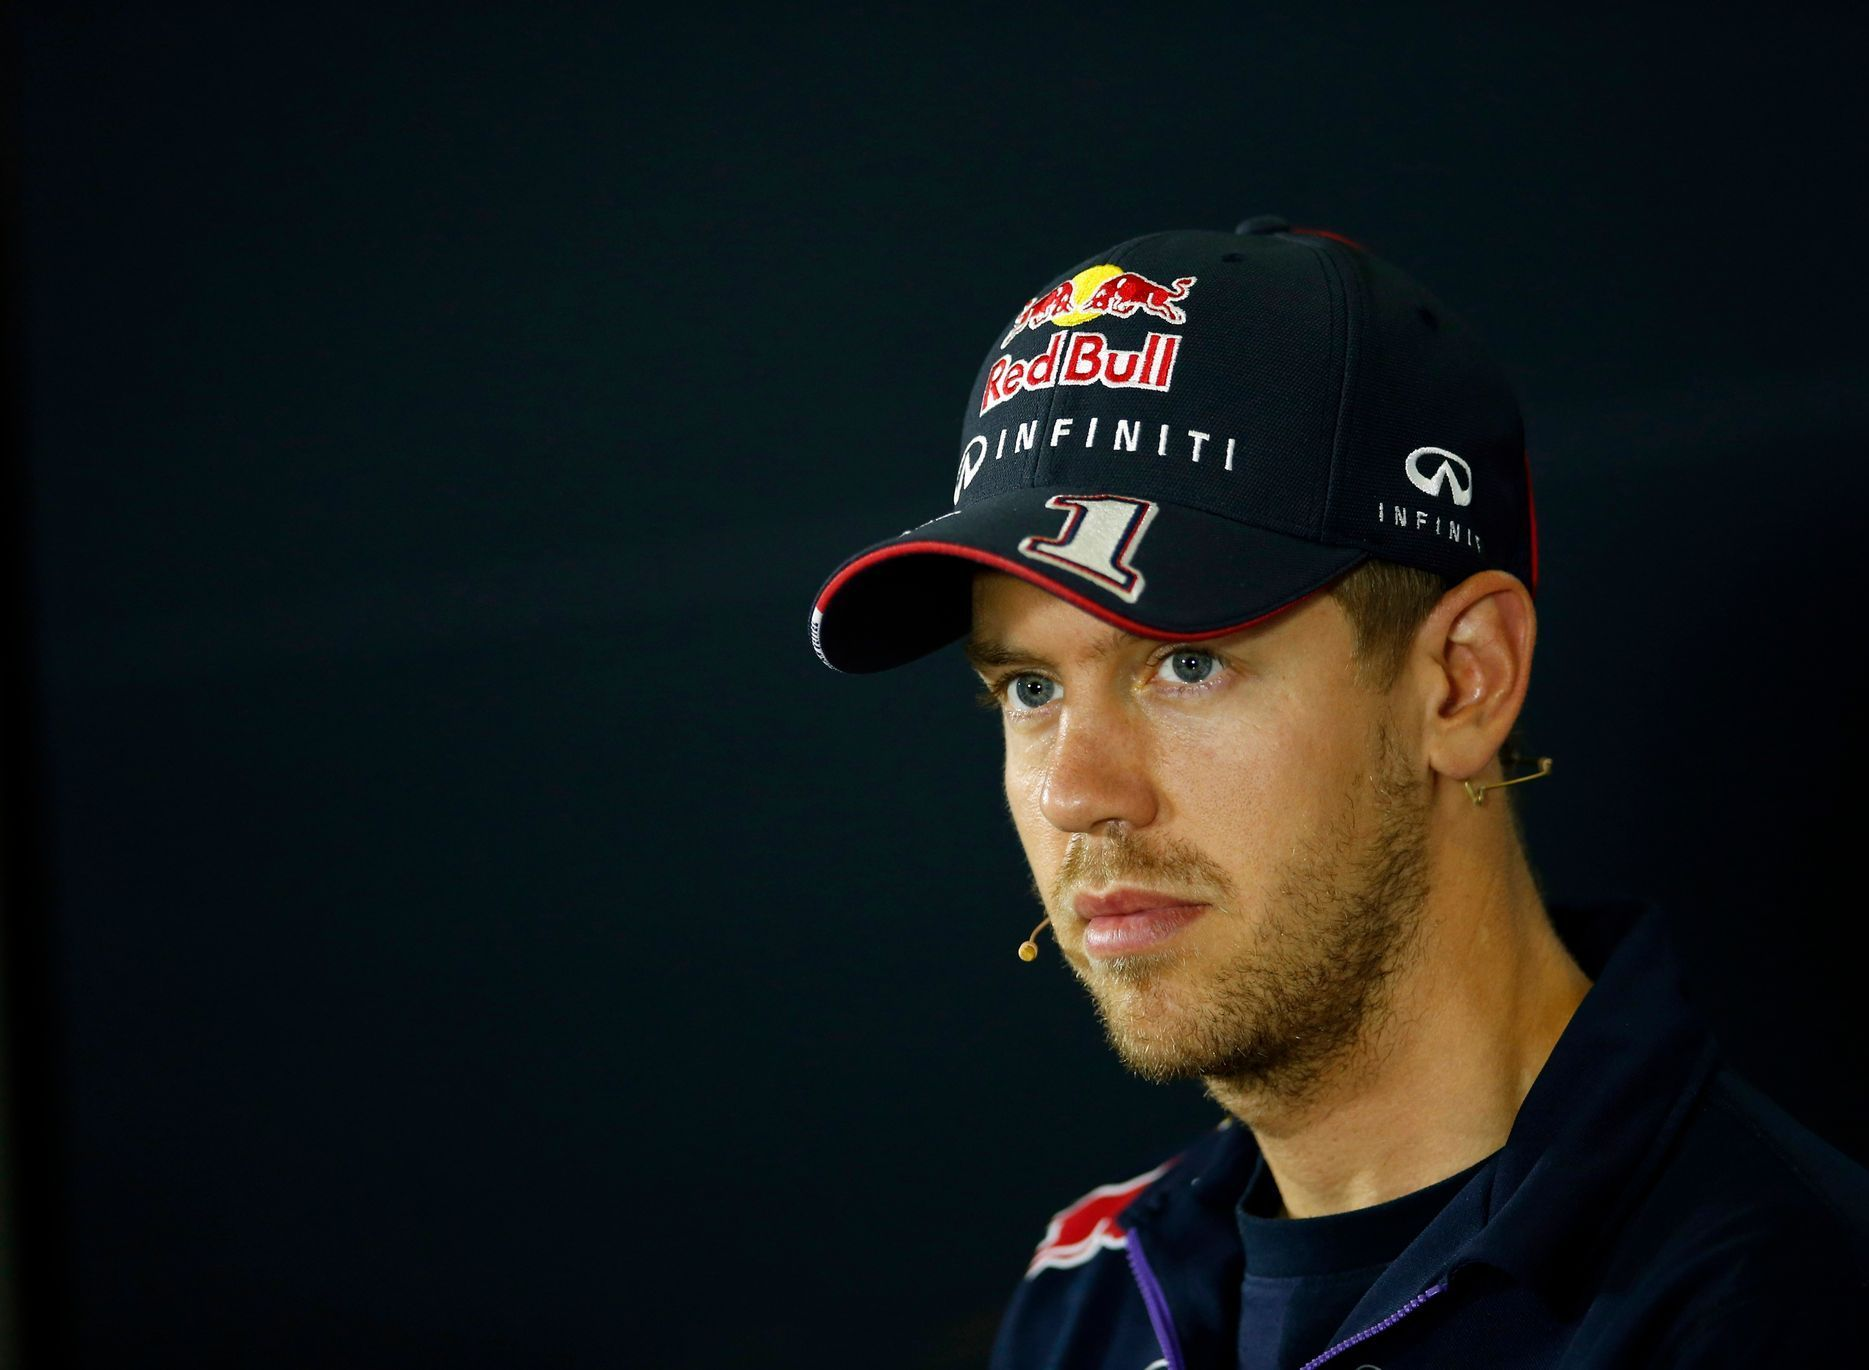 Red Bull Formula One driver Sebastian Vettel of Germany attends a news conference ahead of the Spanish F1 Grand Prix at the Barcelona-Catalunya Circuit in Montmelo